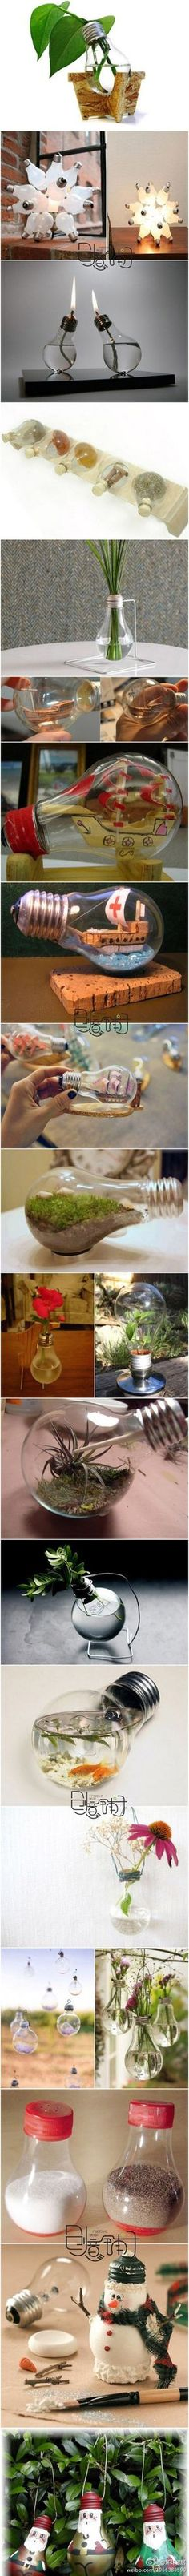 Light bulbs - creative ideas on what to do with them!